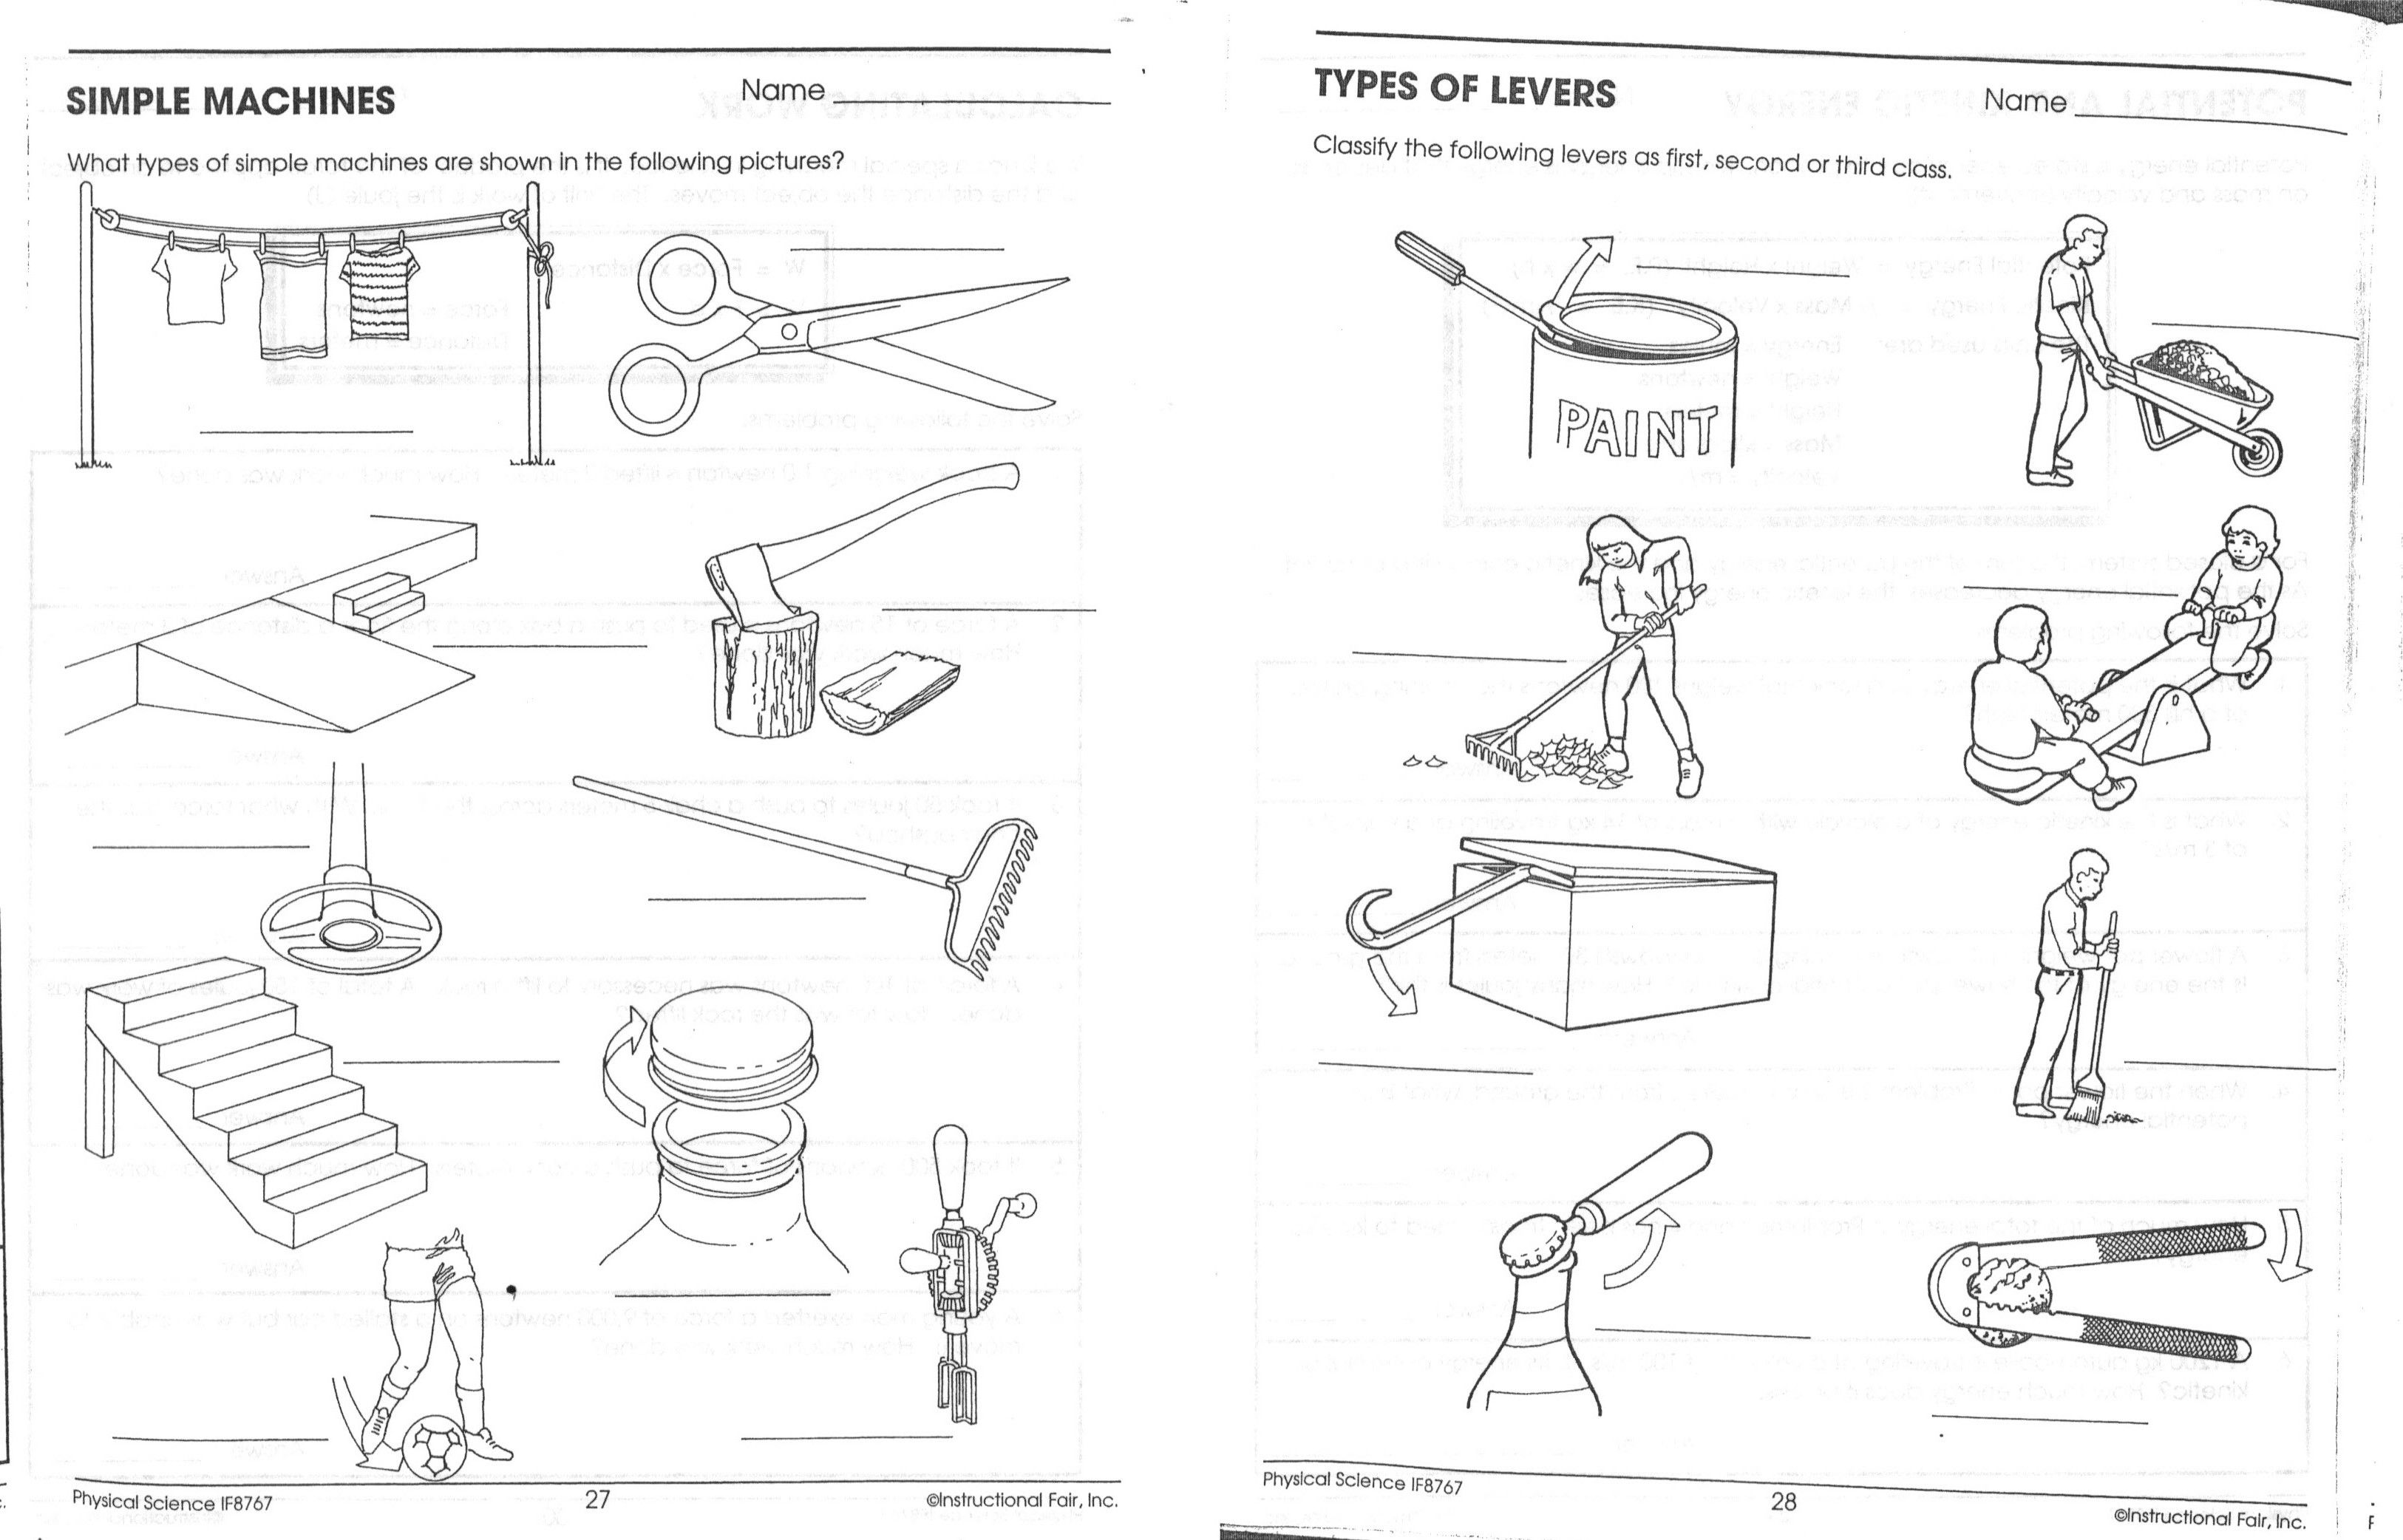 Potential Energy and Ki ic Energy Worksheet Answers Also 18 further Ki ic Vs Potential Energy Worksheet   Ace Energy moreover Potential or Ki ic Energy Worksheet   Physical Science by 4 Little furthermore Ki ic Potential Energy  Grade 9    Free Printable Tests and in addition Conservation Of Energy Worksheet 41 Super Inspirational Ki ic and furthermore Potential or Ki ic  – Middle Science Worksheets – of furthermore  further  also This is a short quiz worksheet to check for student's understanding also  in addition Potential Or Ki ic Energy Worksheet   Energy Etfs additionally Ki ic And Potential Energy Worksheet   reviveserum moreover  in addition Potential and Ki ic Energy   TeacherVision further  also Ki ic Vs Potential Energy Worksheet   Energy Etfs. on potential and kinetic energy worksheet